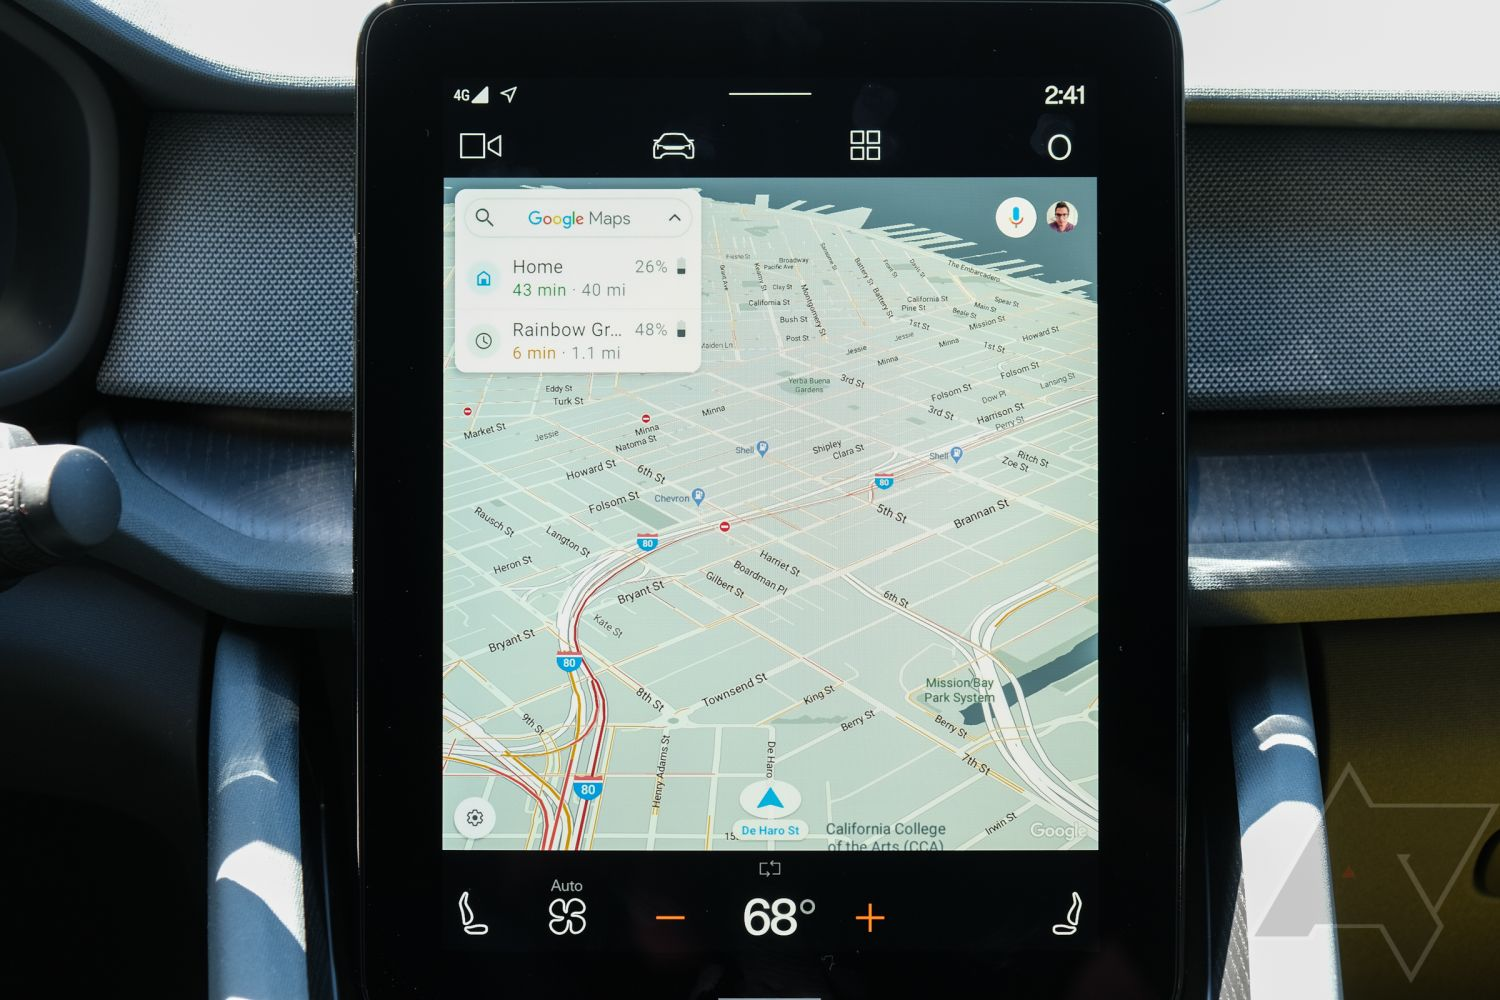 android automotive app display